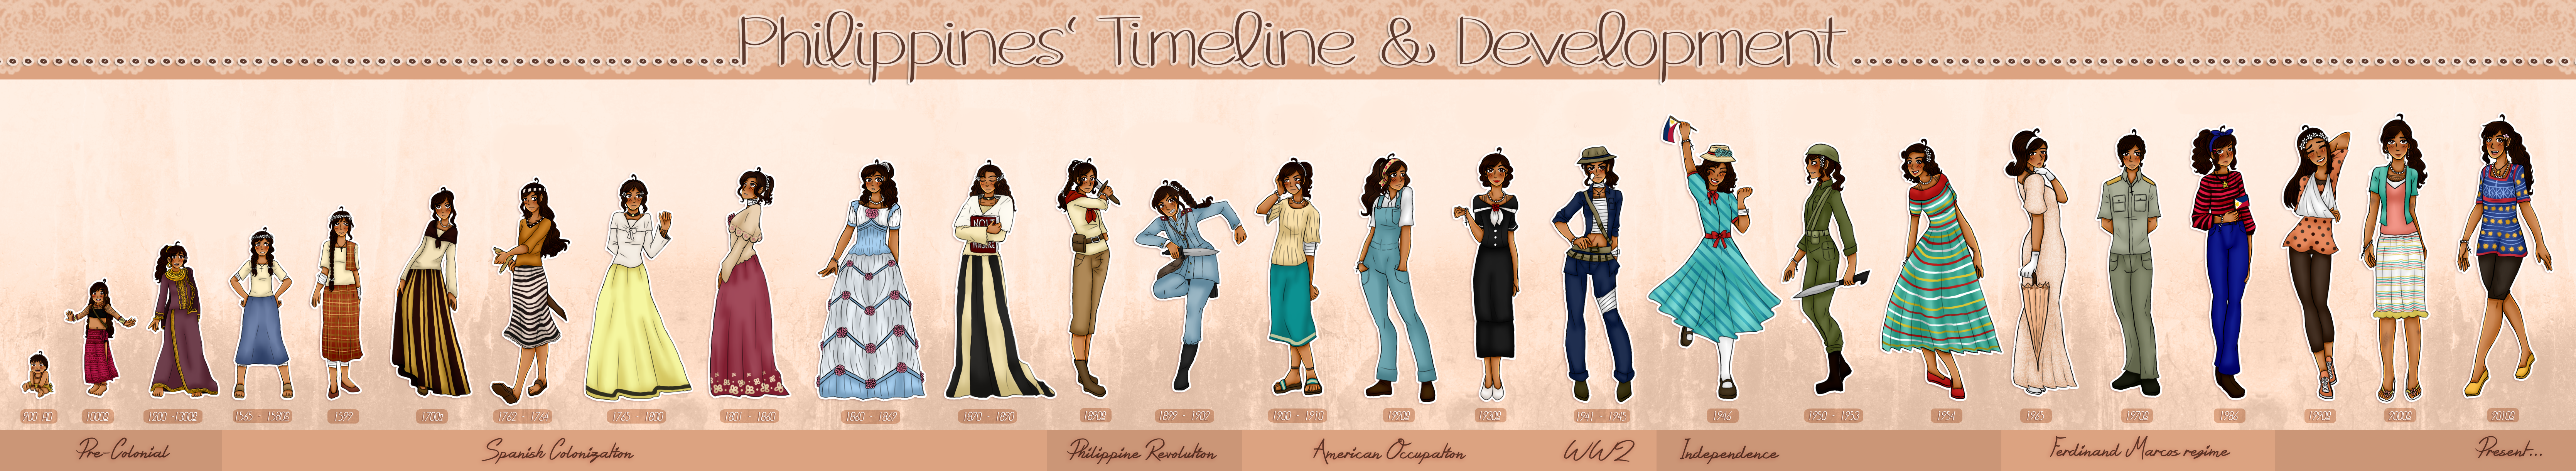 Aphoc Timeline Of The Philippines By Melondramatics On Deviantart